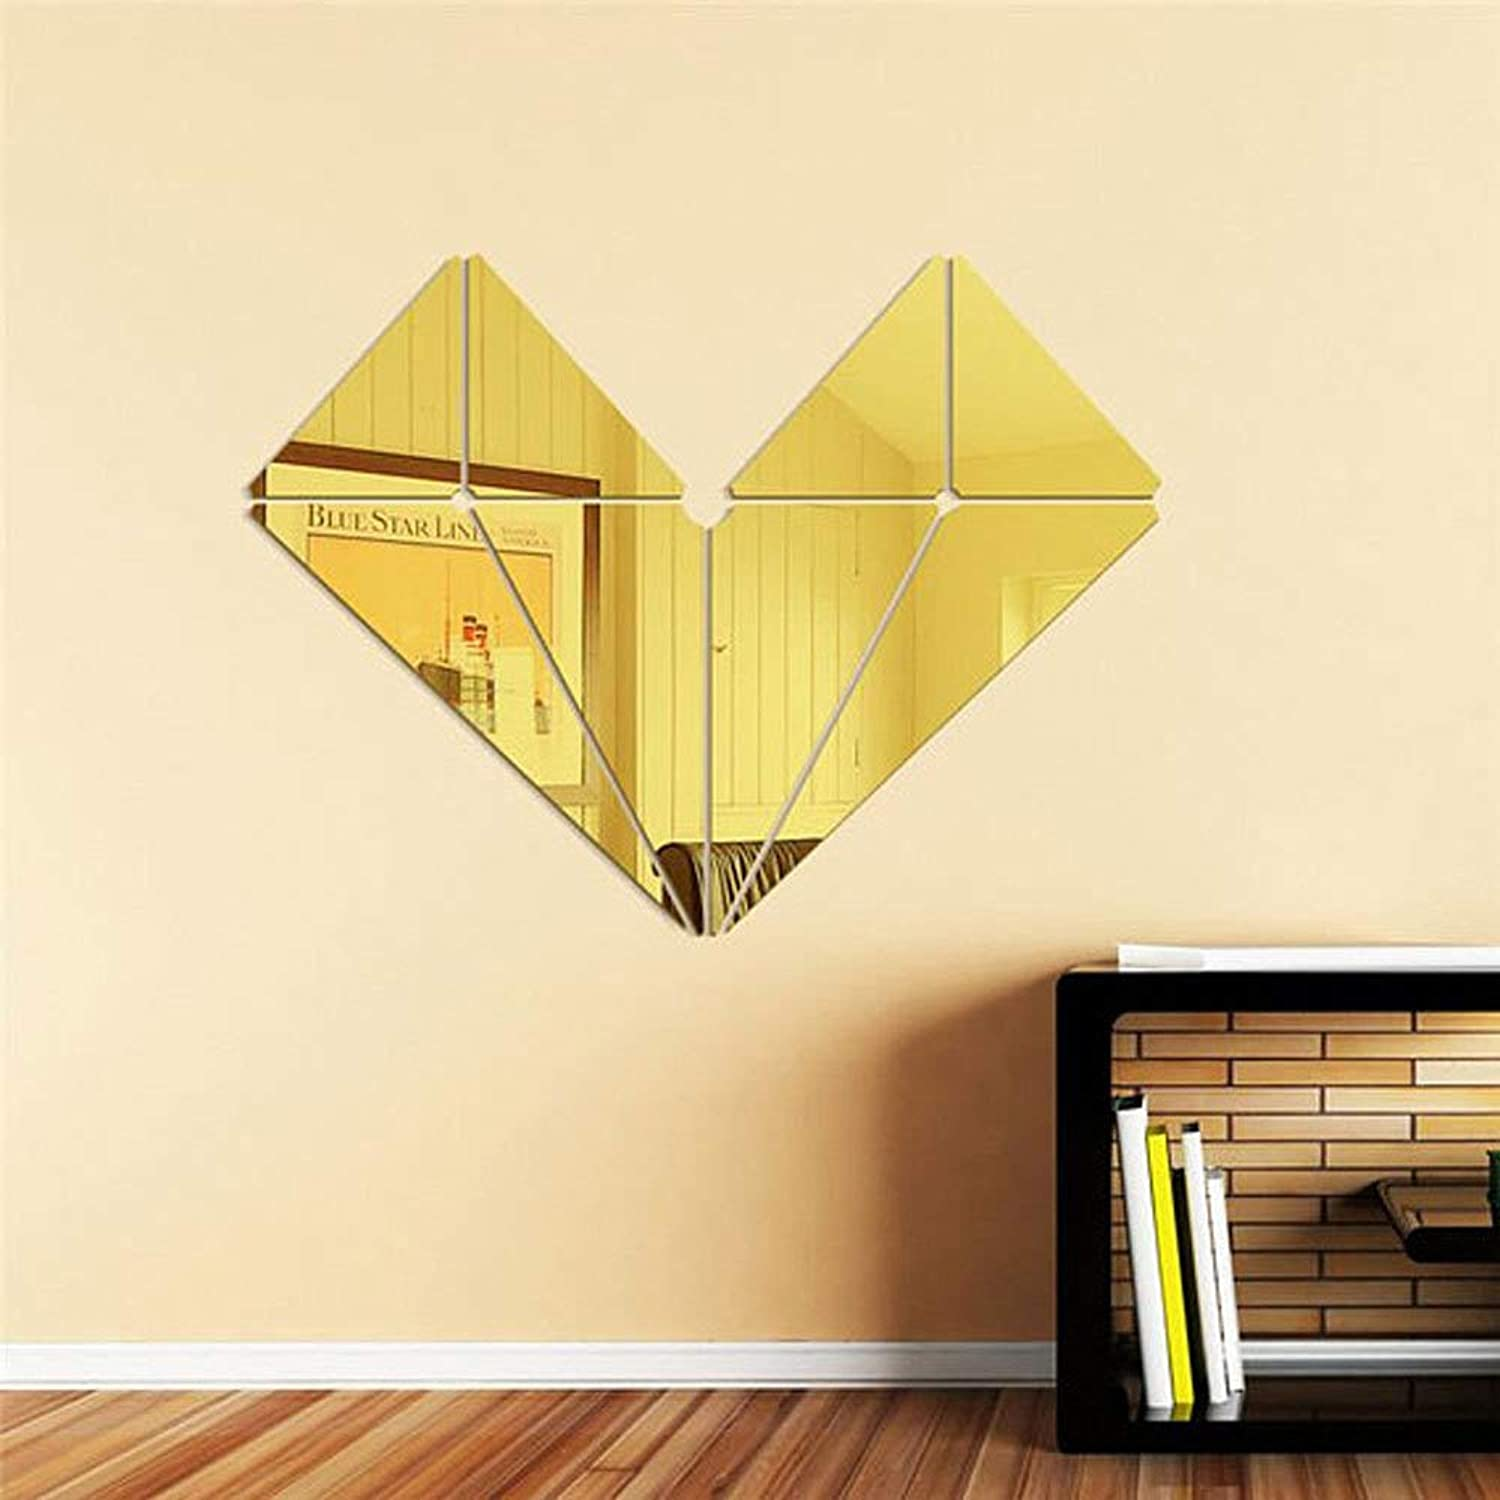 3D Mirror Wall Sticker 3D Acrylic Modern Mirror Wall Sticker Geometric Puzzle DIY Mural Decal Home Room Decoration (color   gold)